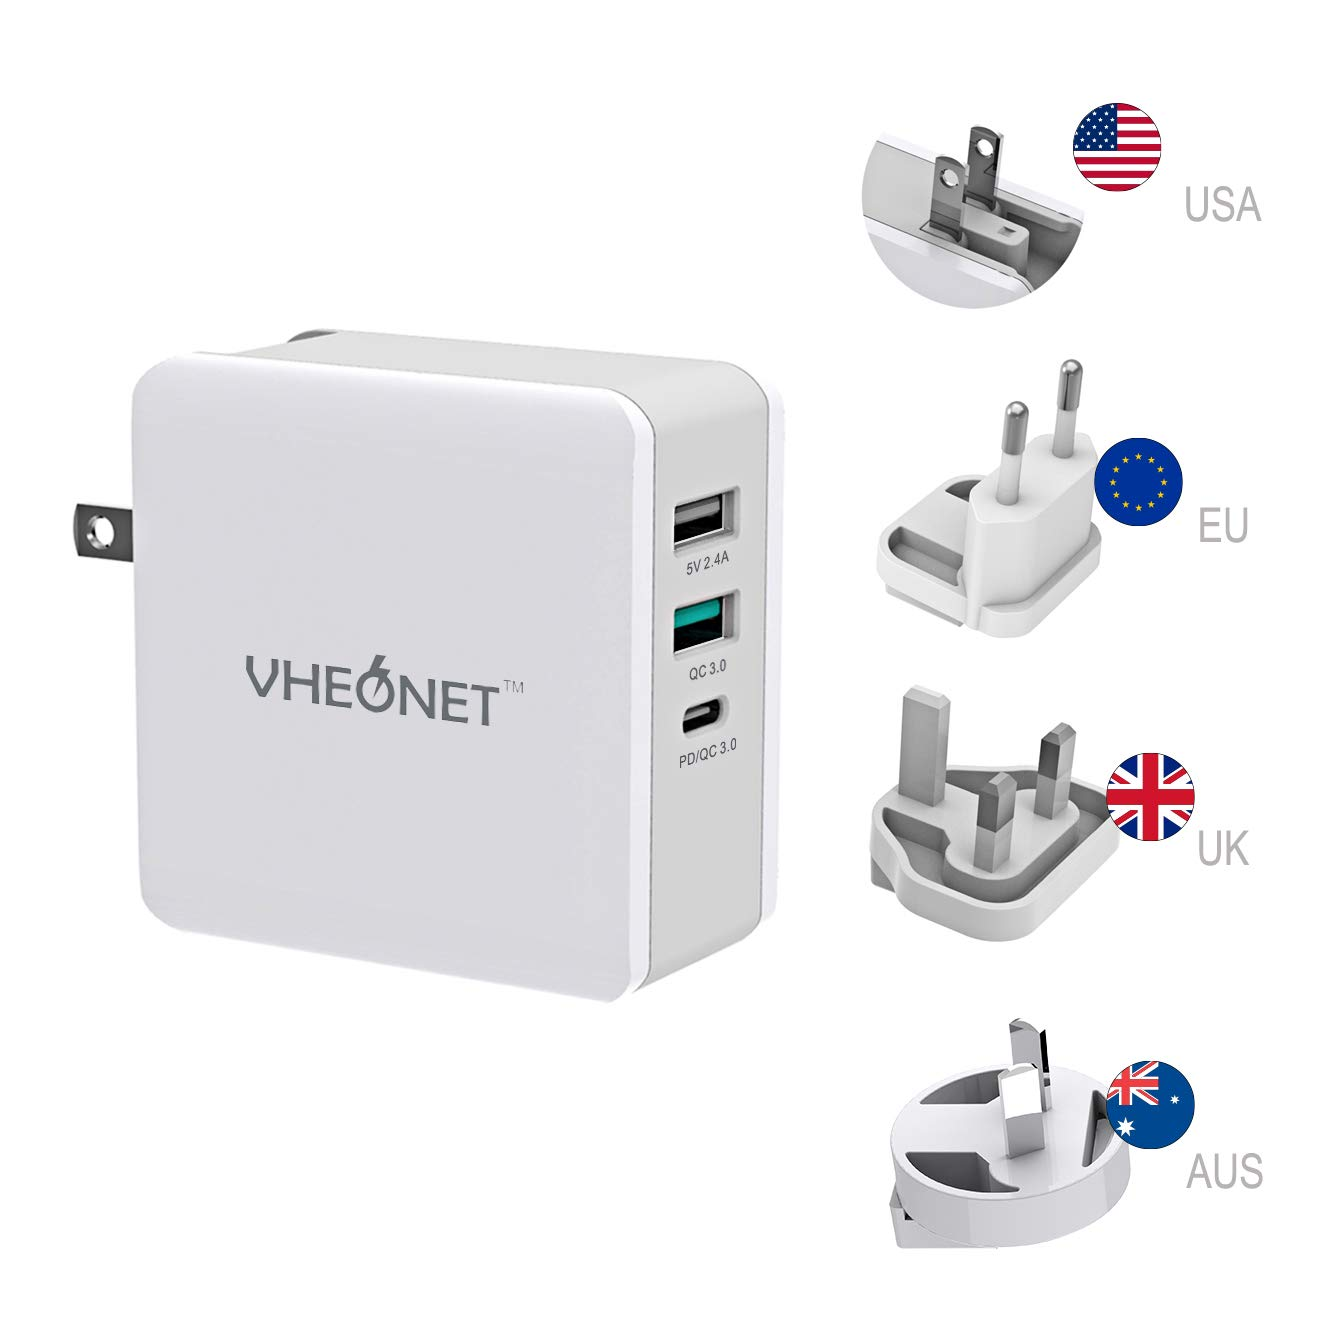 Fast Charging USB C Wall Charger 3-Port 65W PD Wall Adapter with Foldable Plug for MacBook, iPhone Xs/XS Max/XR, Samsung Galaxy S8 / S8+ / Note8 and More (White) by VHEONET